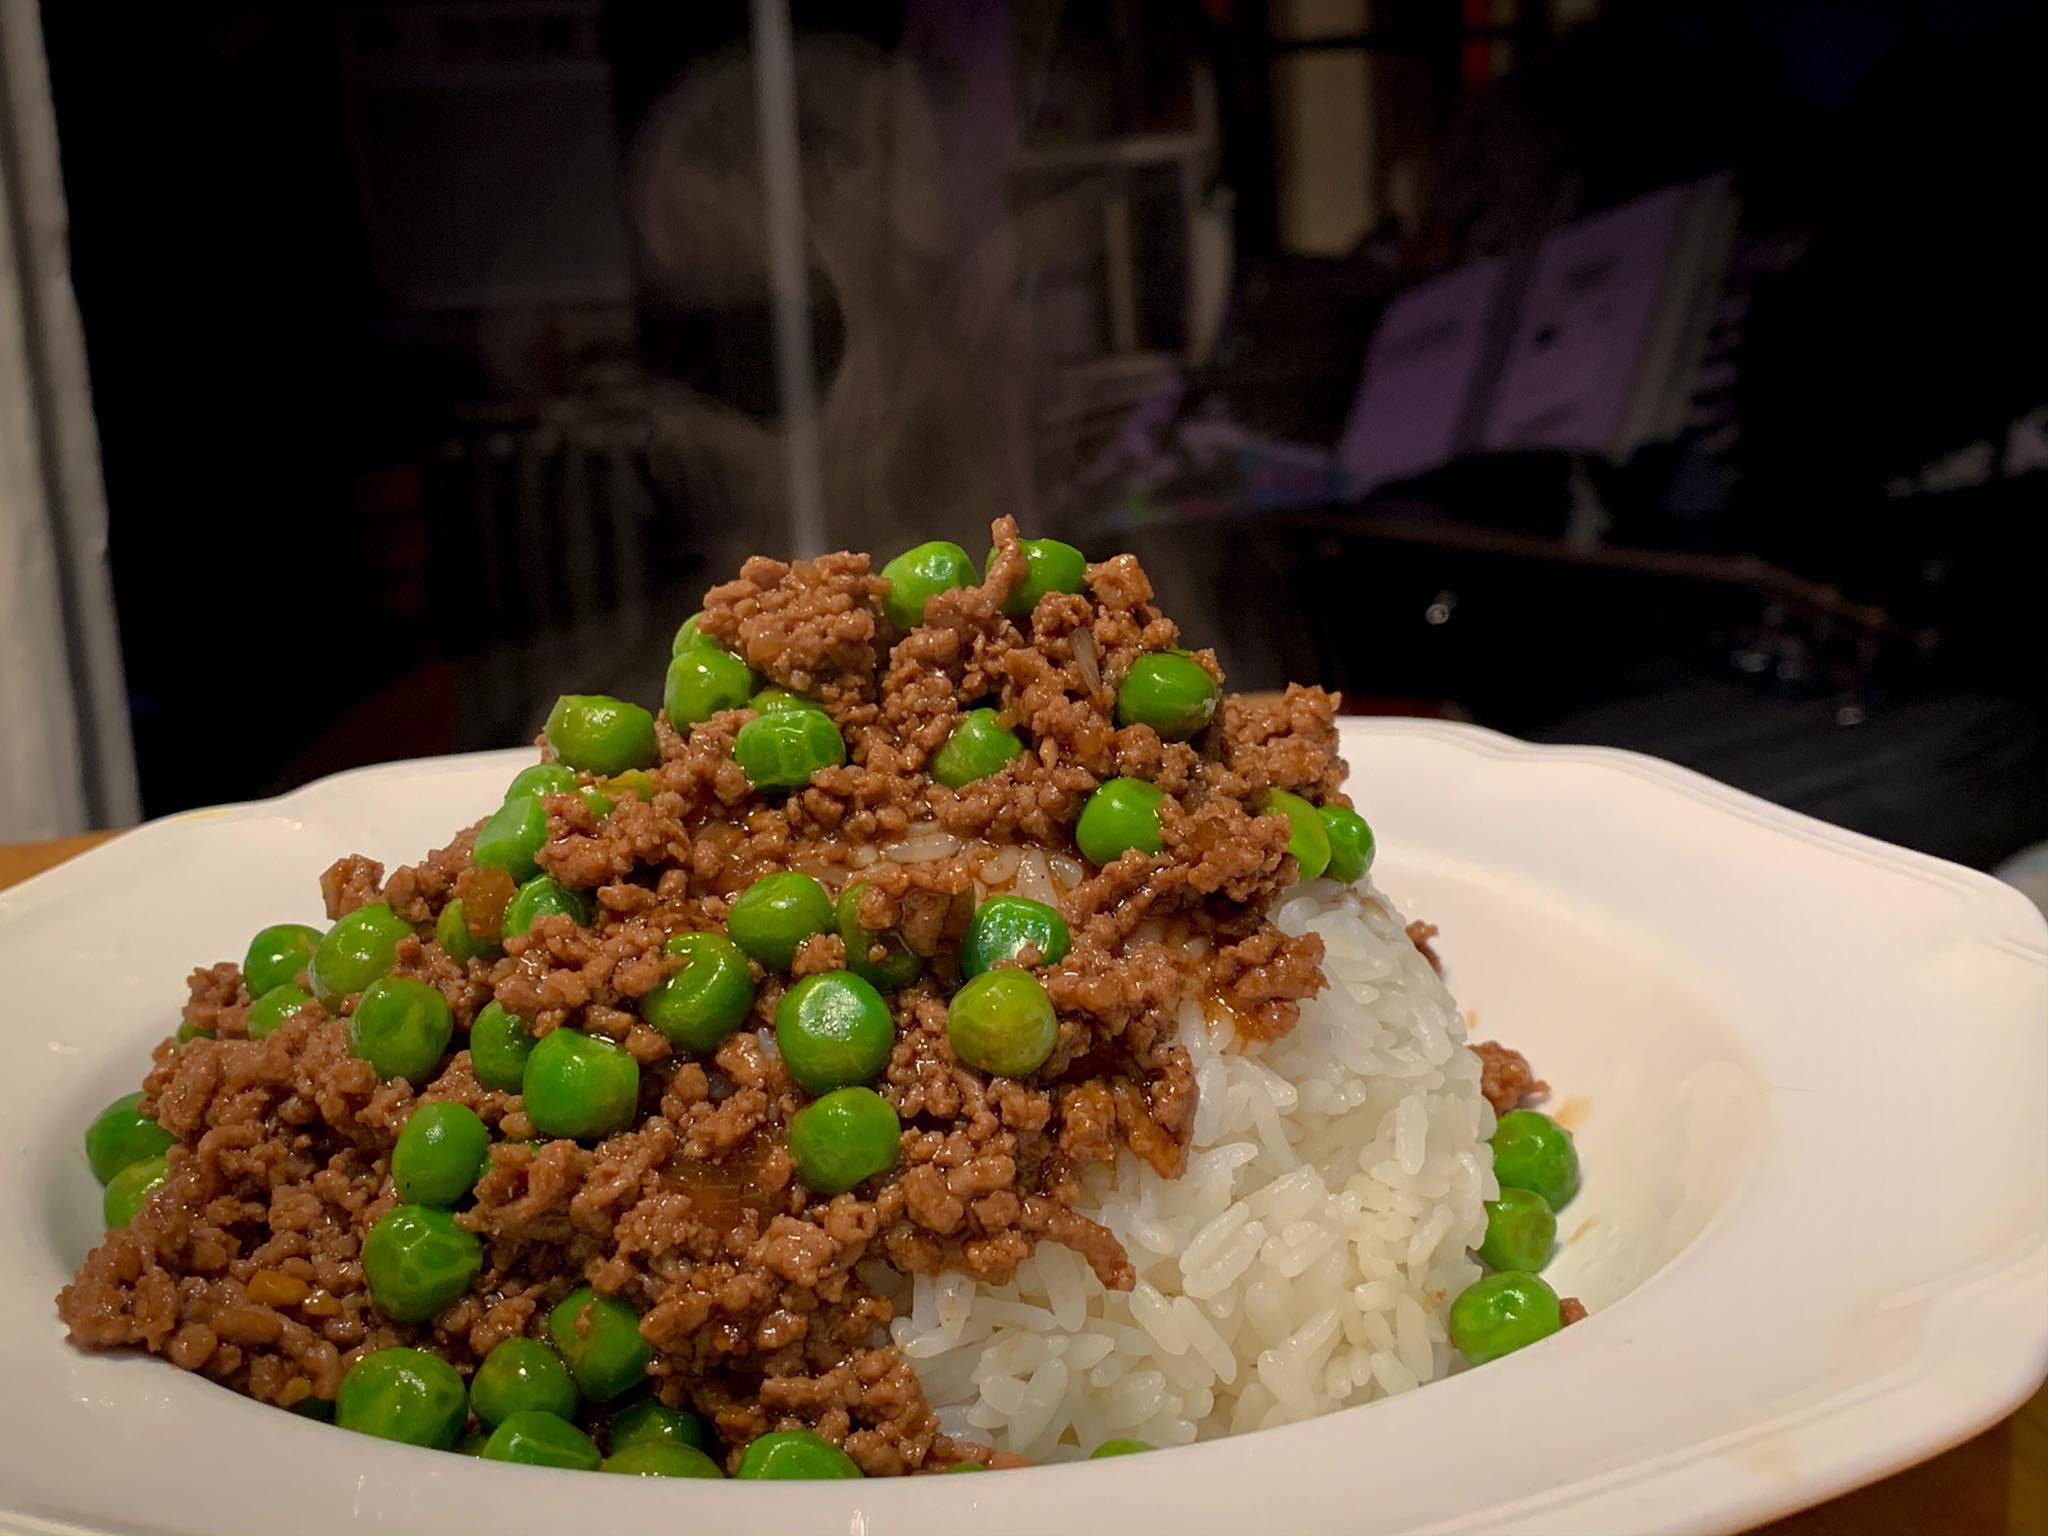 Quarantine dinner #23 Peas with beef